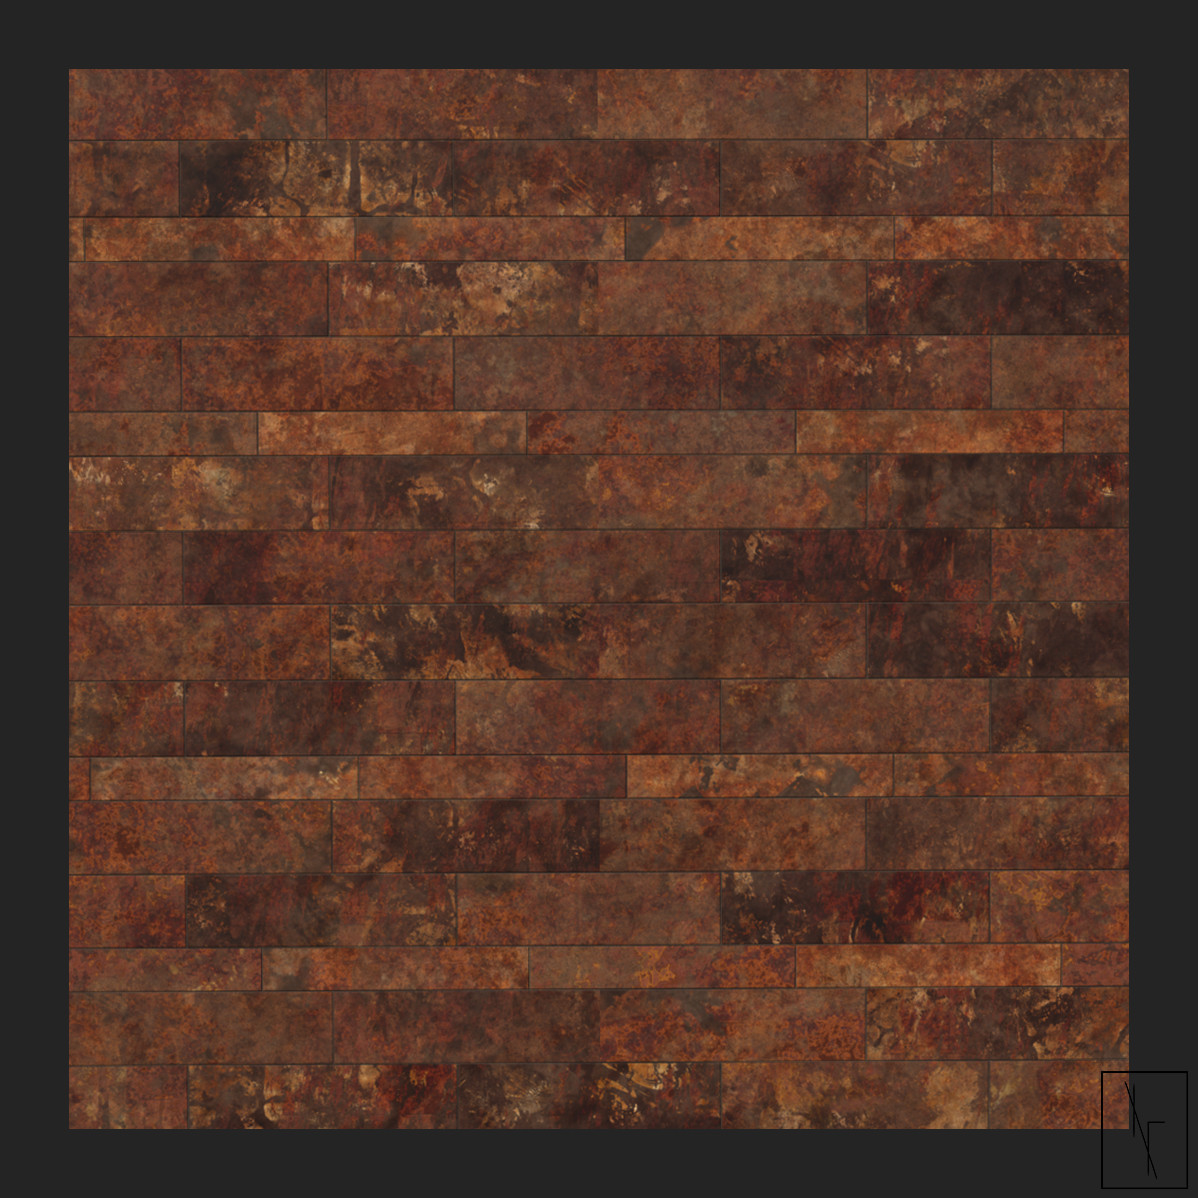 Niels fechtel bronze bathroom tiles straight on image